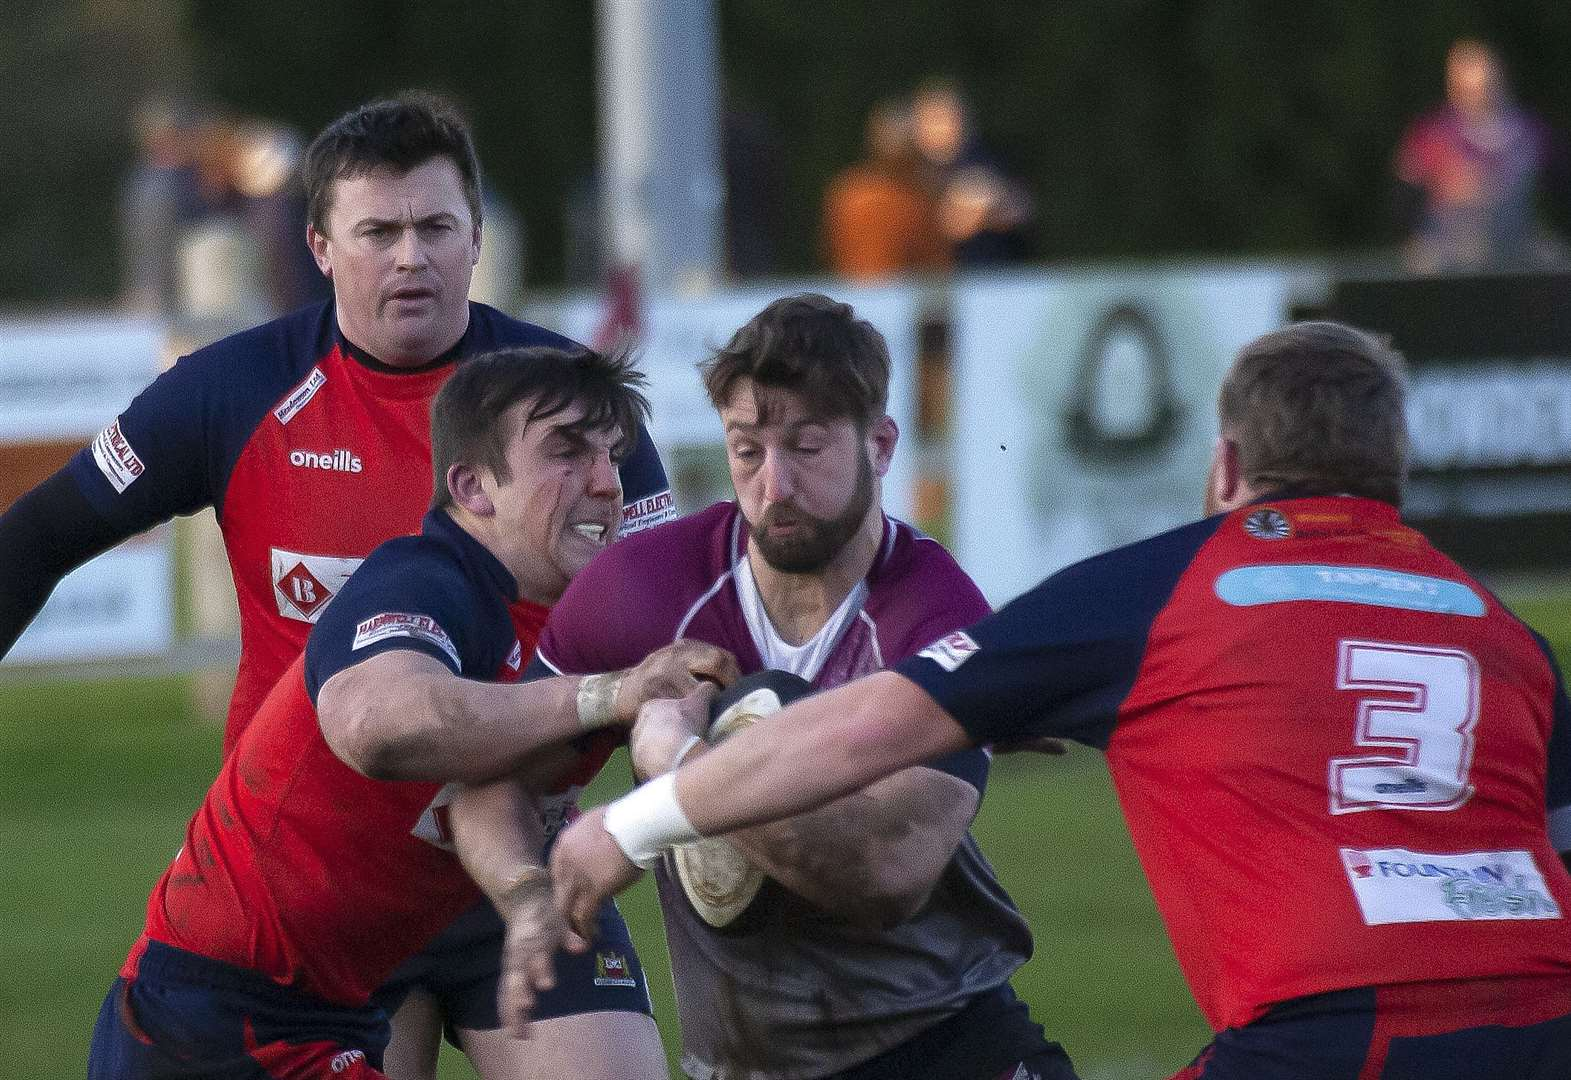 West Norfolk Rugby Club make it a perfect ten